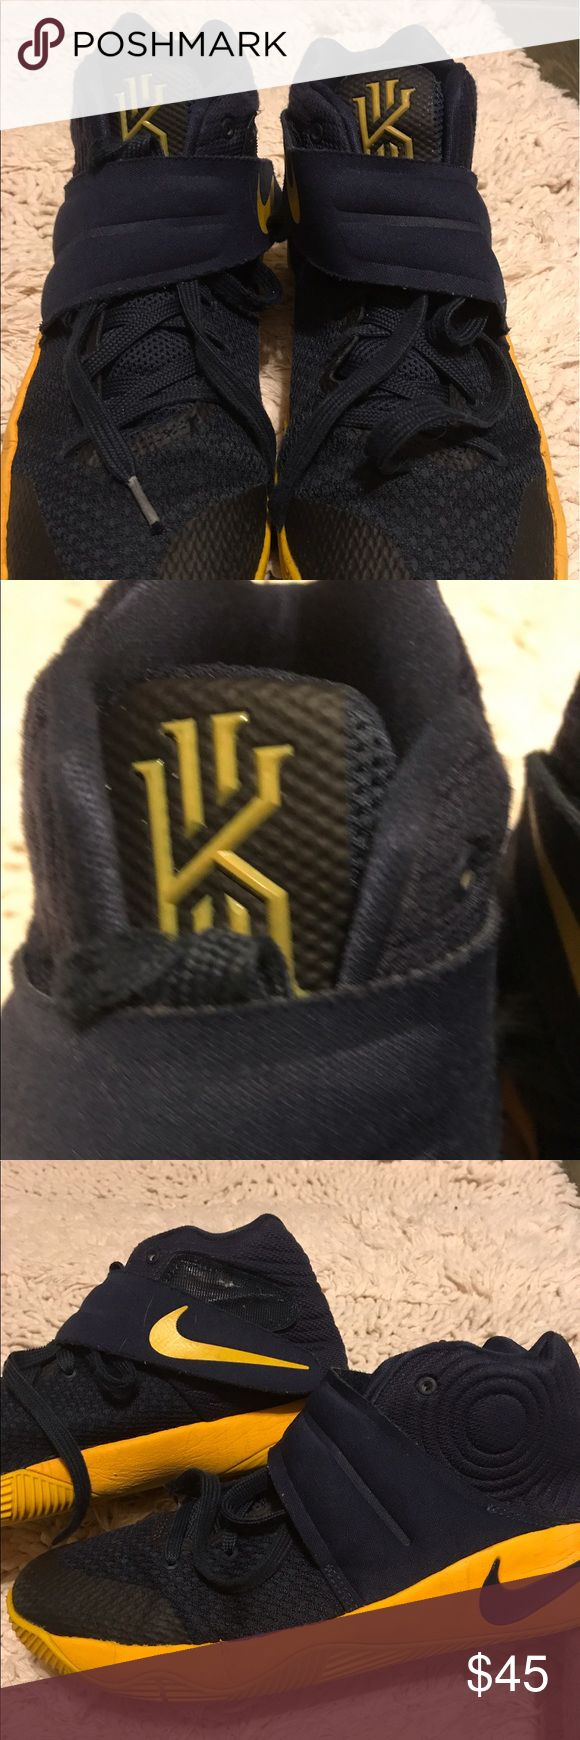 Nike Kyrie Irving Boys Tennis Shoes Size 7 Youth Nike Kyrie Irving Boys Tennis Shoes Size 7 Youth Yellow and Navy Blue/Black Dark Tent Color on Shoe Yellow Bottom Grid Laces and Velcro Closure Great Condition Size 7 Youth and so much more wear. Sturdy made for our active boys!! Nike Kyrie Irving Shoes Sneakers